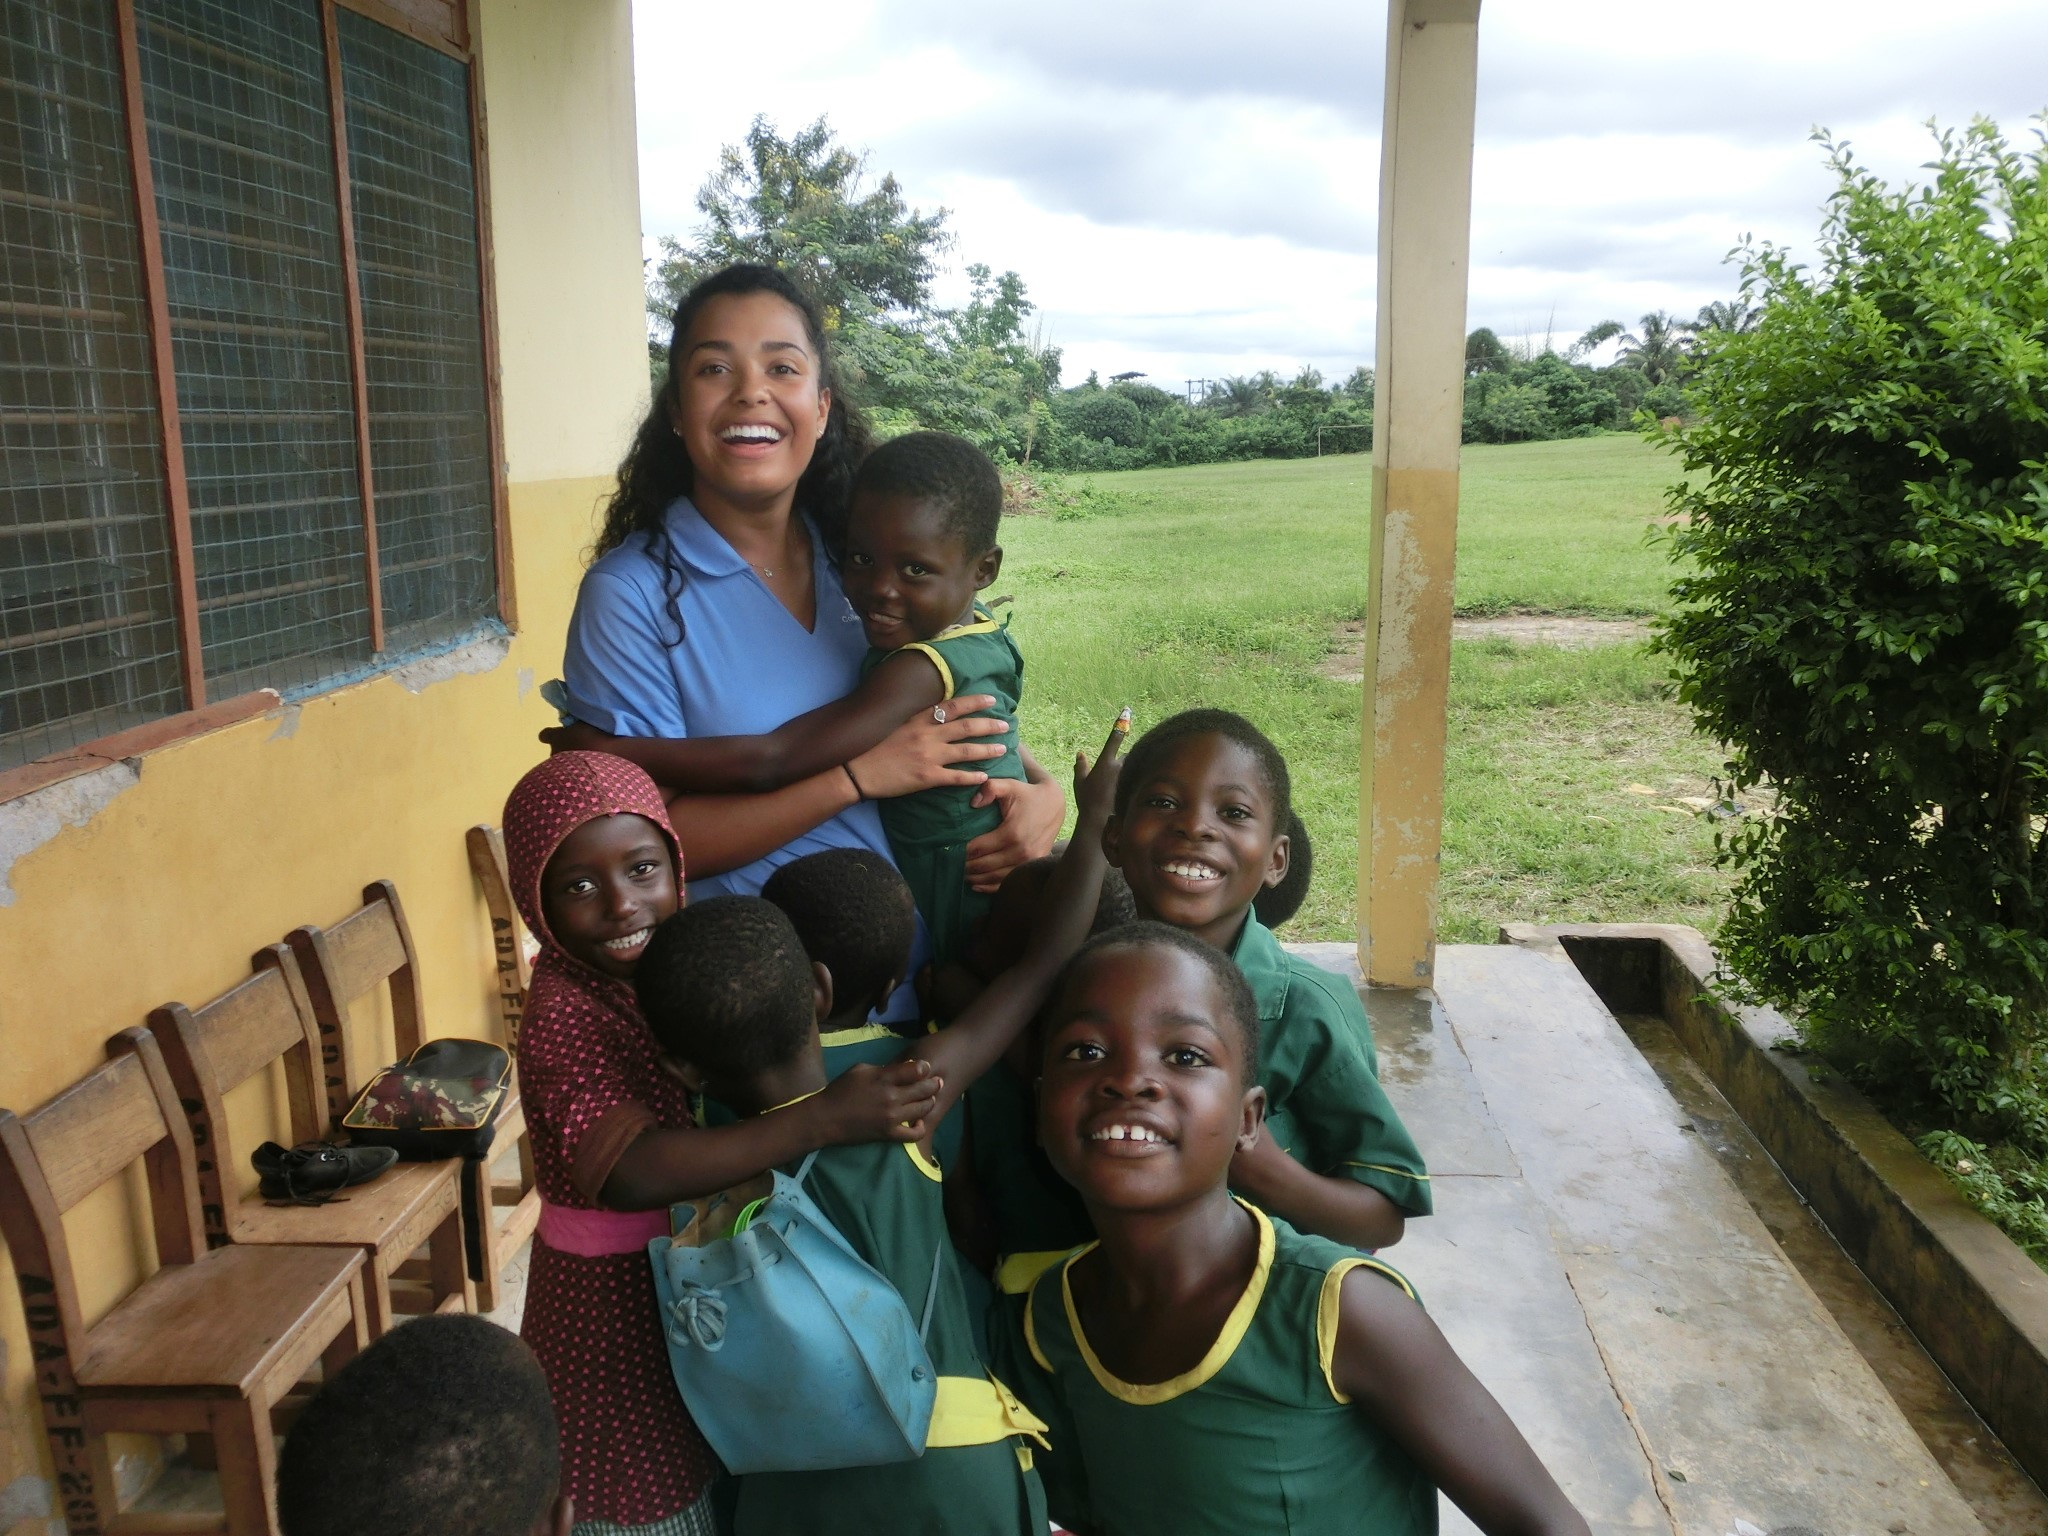 Student Nurse with children in Ghana